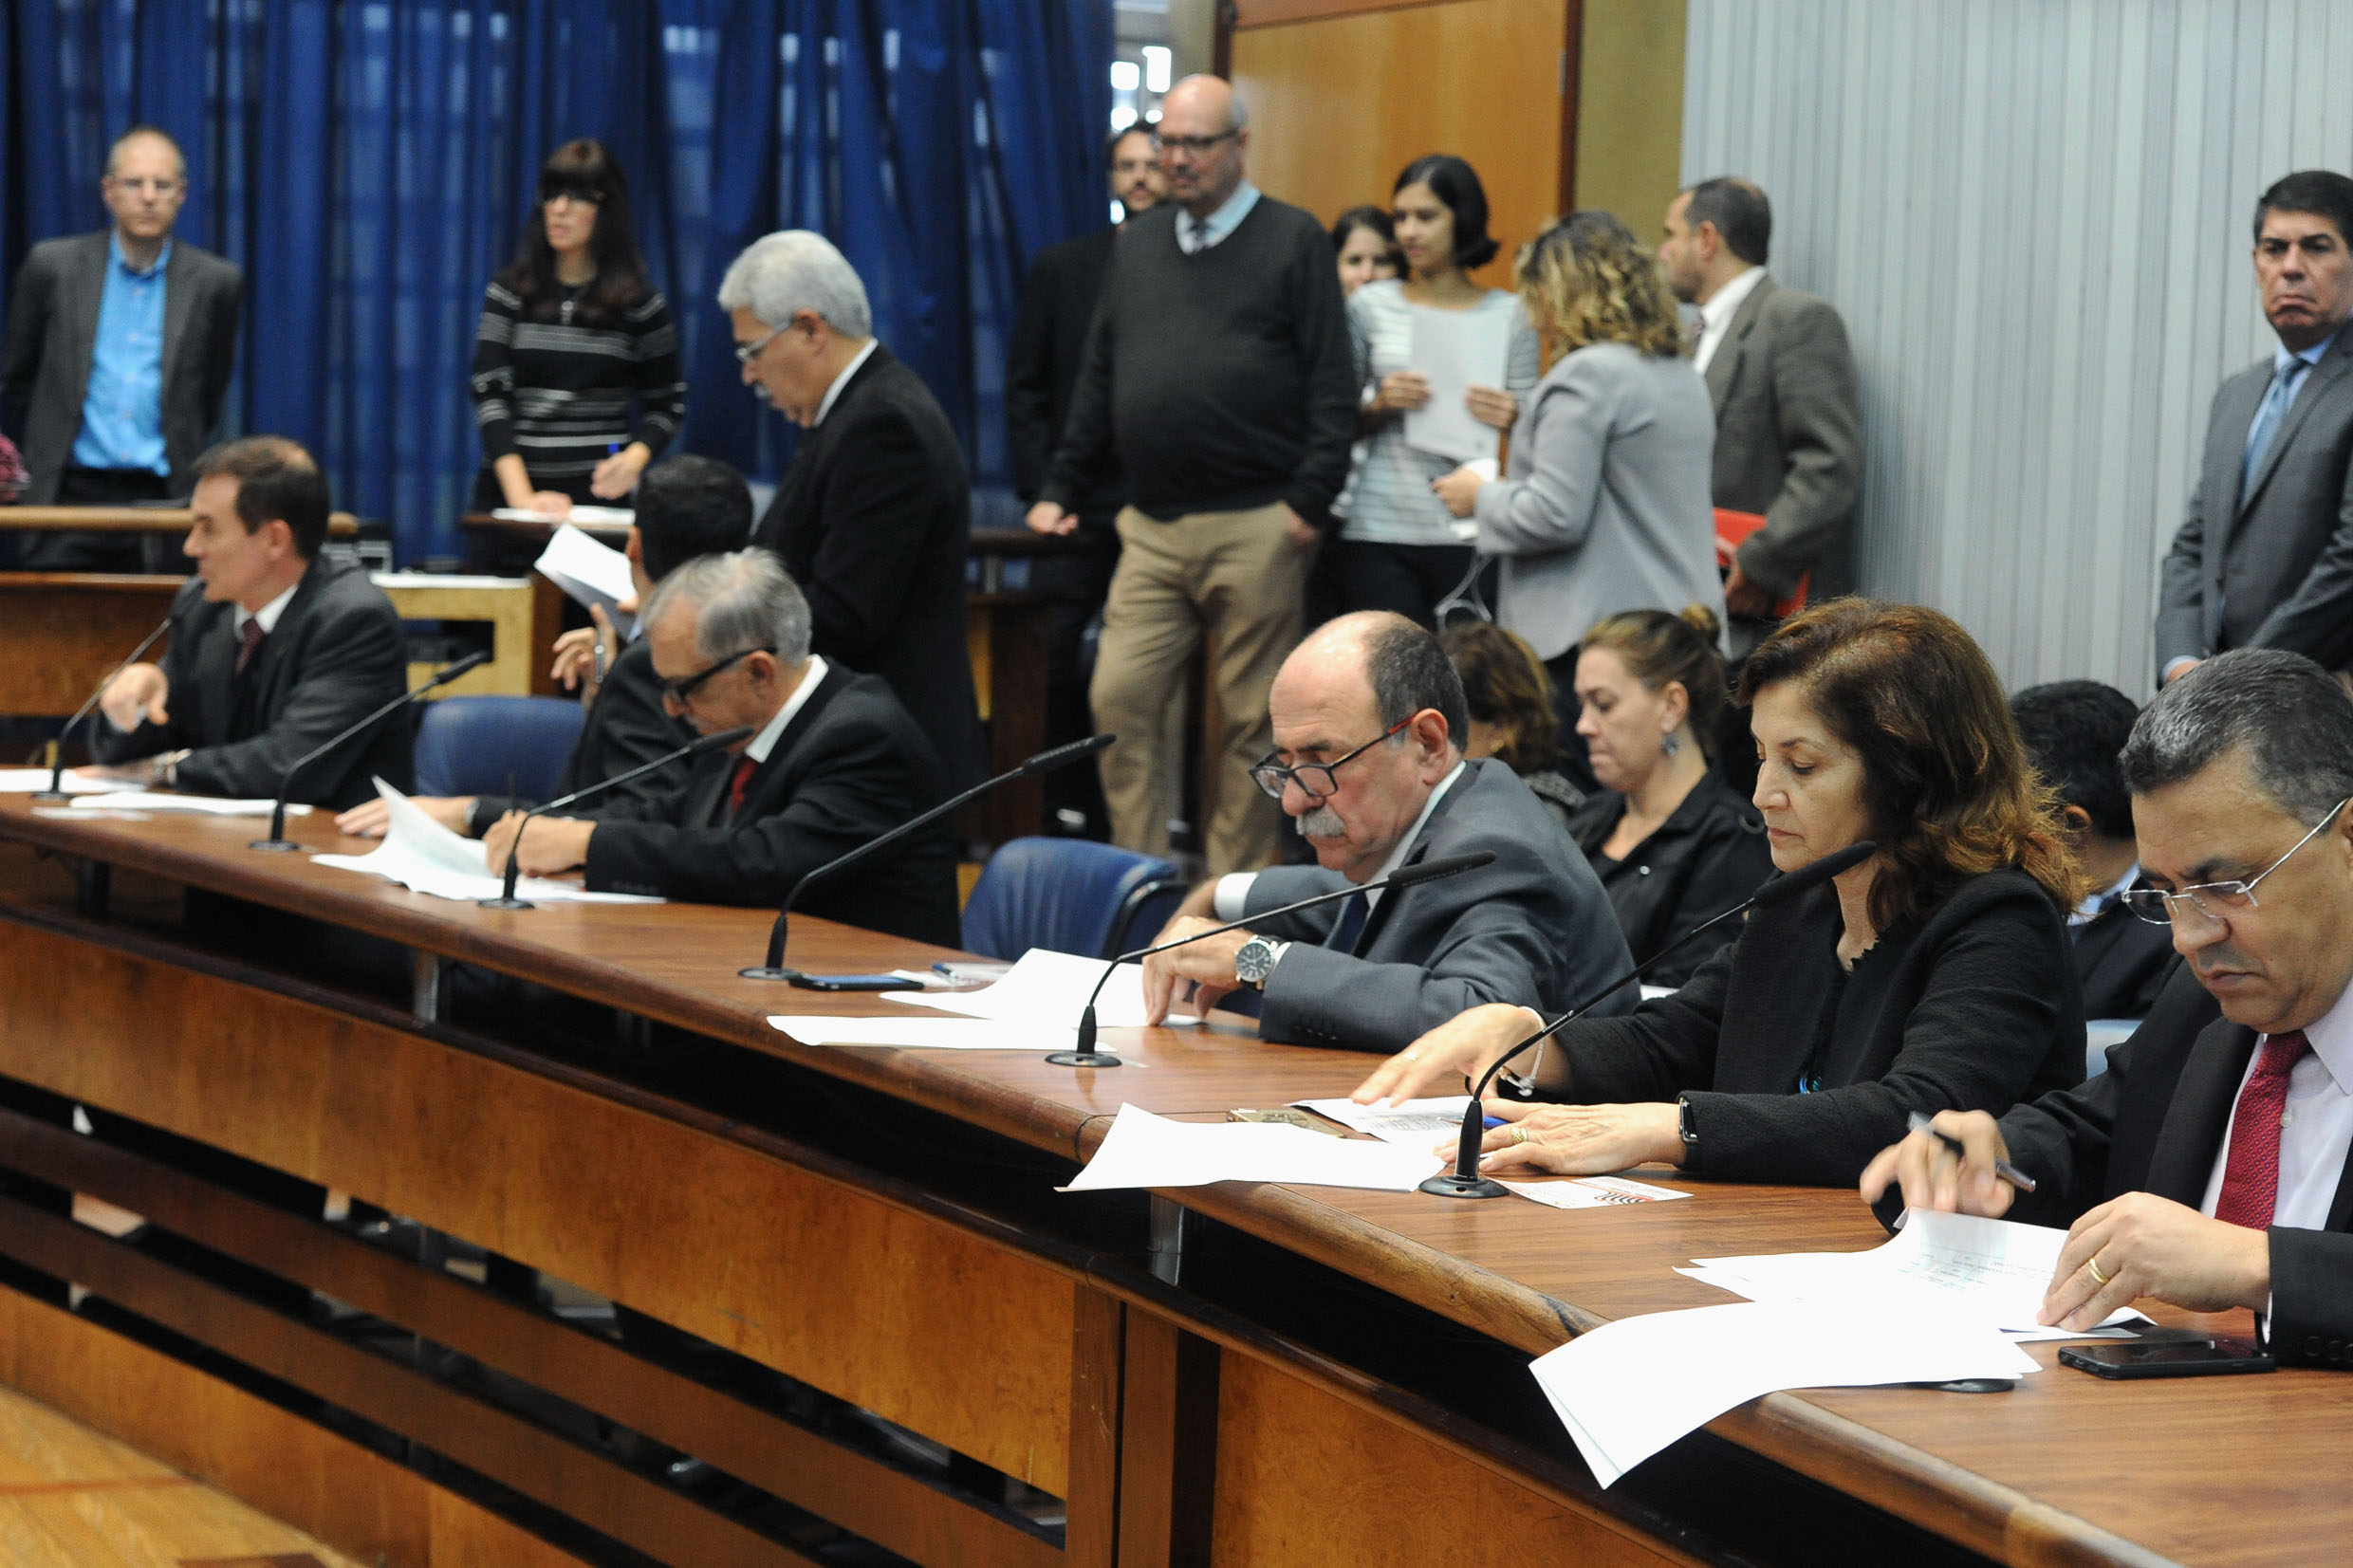 Parlamentares na comissão<a style='float:right' href='https://www3.al.sp.gov.br/repositorio/noticia/N-06-2018/fg224241.jpg' target=_blank><img src='/_img/material-file-download-white.png' width='14px' alt='Clique para baixar a imagem'></a>